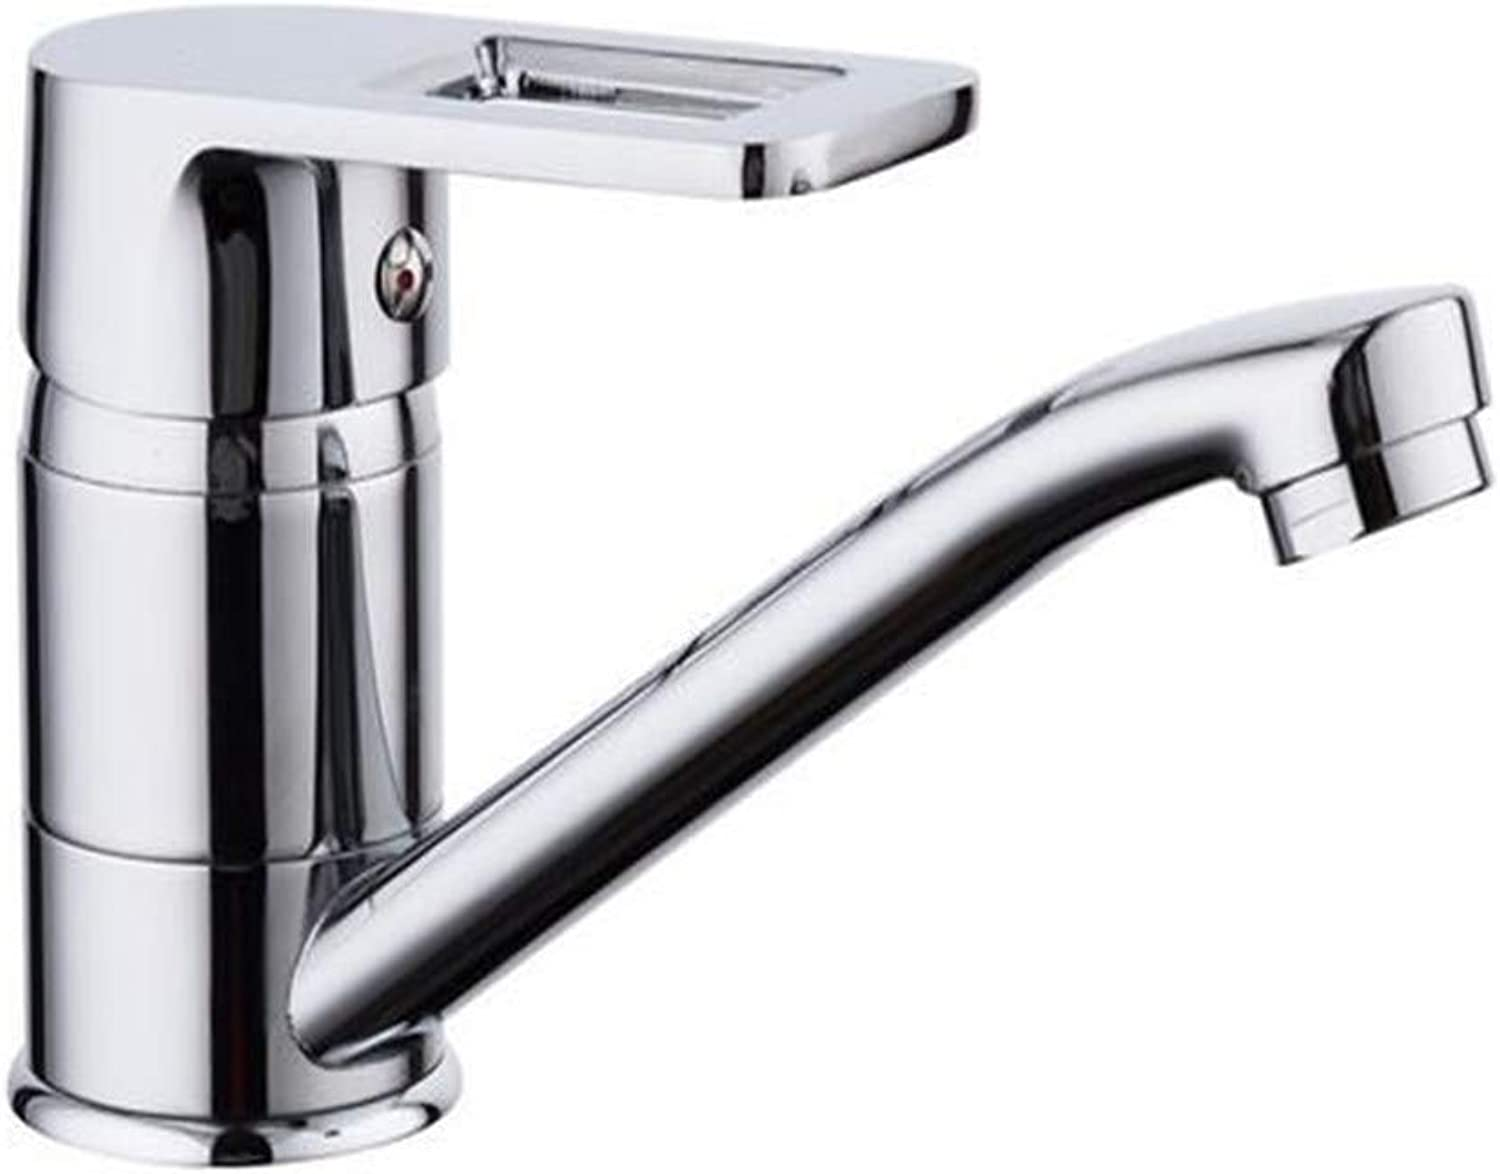 Brass Kitchen Modern Classic Chrome Kitchen Sink Faucet Zinc Alloy Kitchen Sink Mixer Tap Hot & Cold Water Faucet